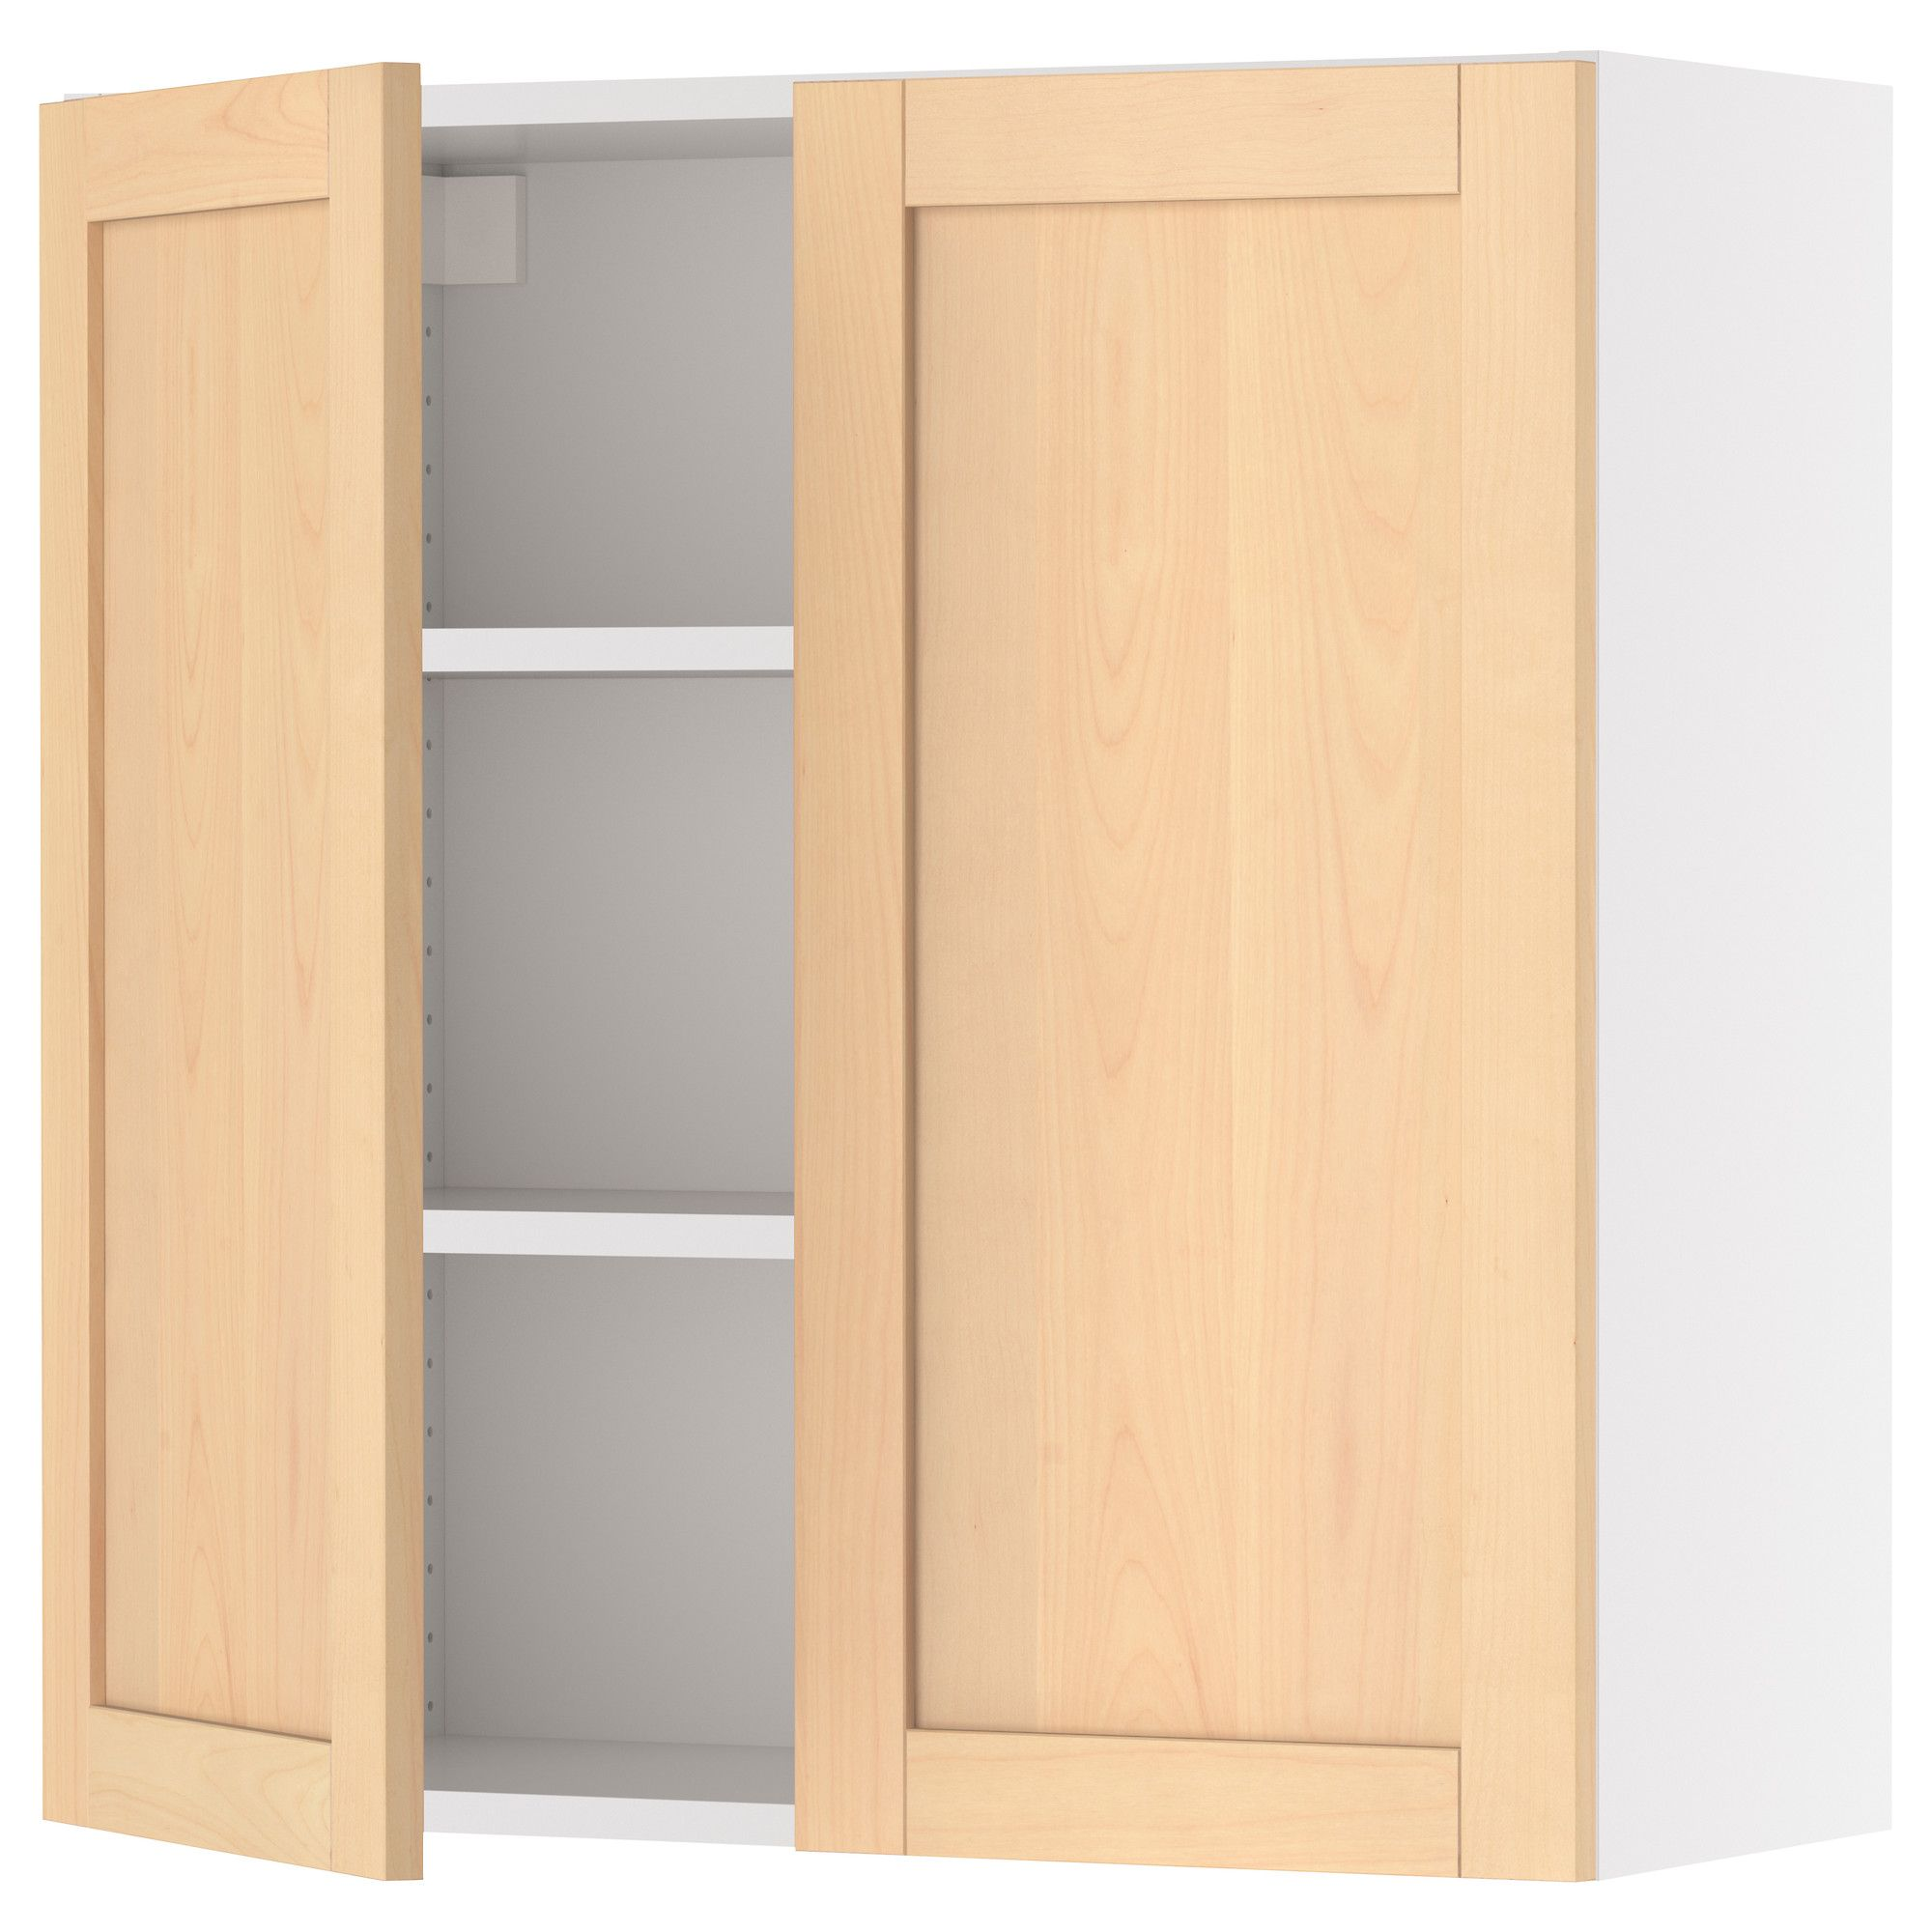 Ikea Us Furniture And Home Furnishings Kitchen Wall Cabinets Wall Cabinet Clever Bathroom Storage